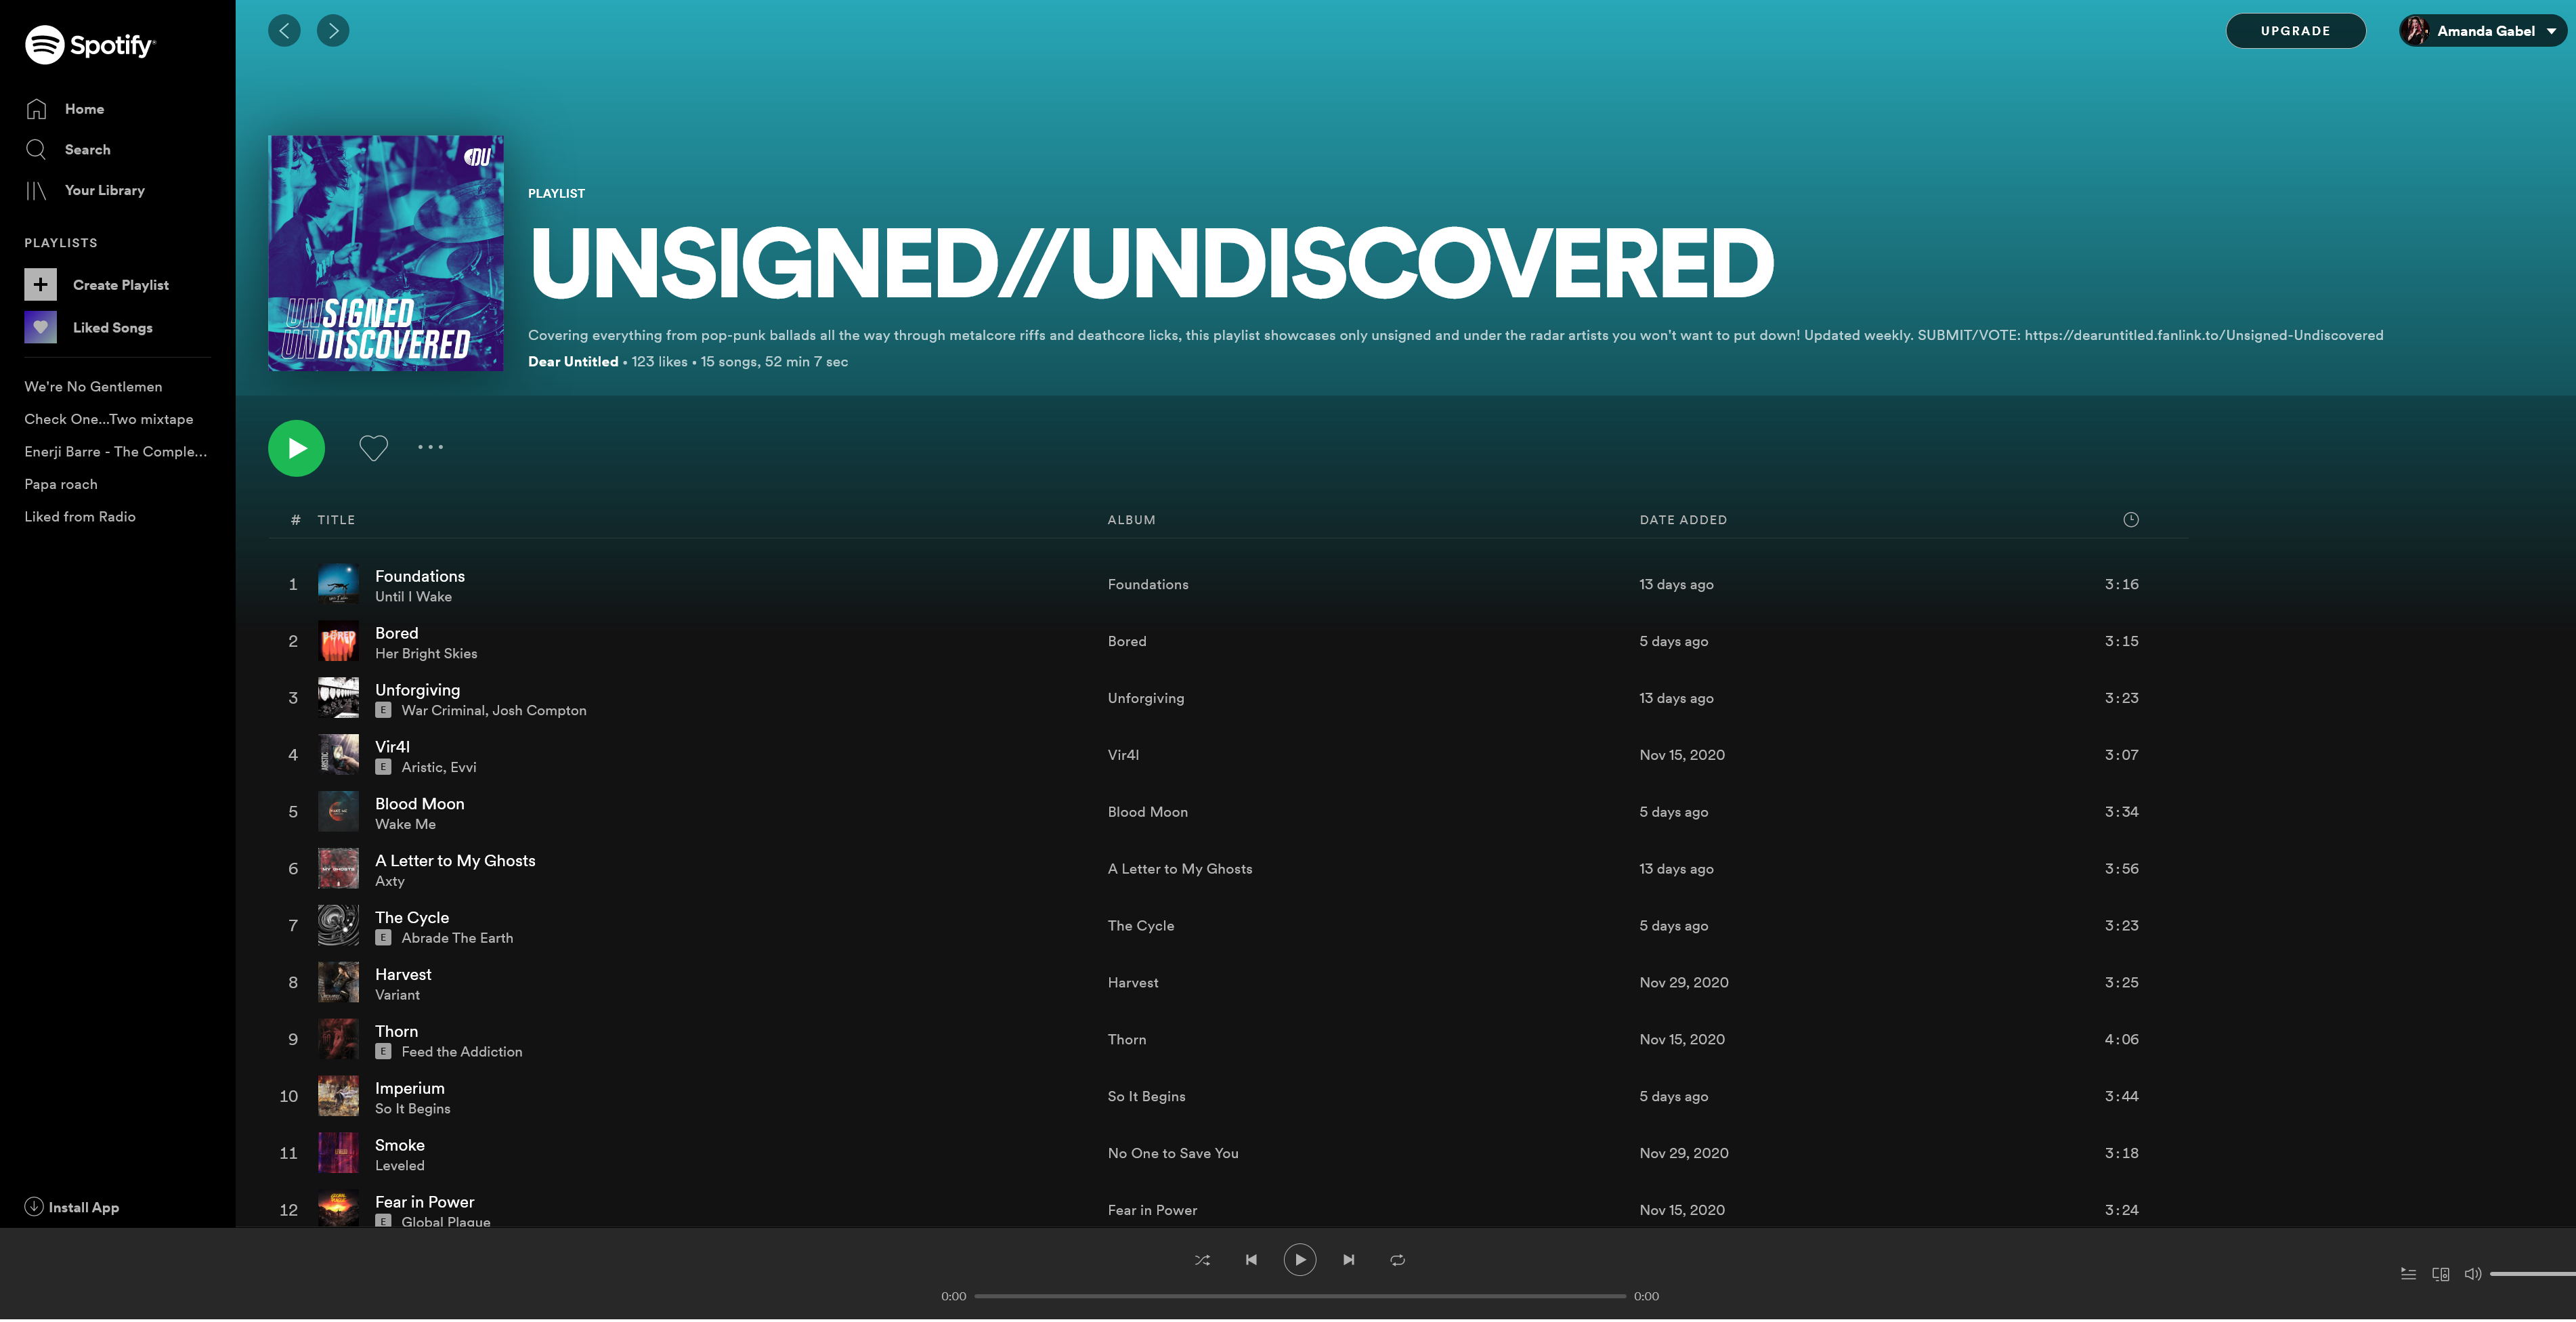 Spotify – UNSIGNED UNDISCOVERED